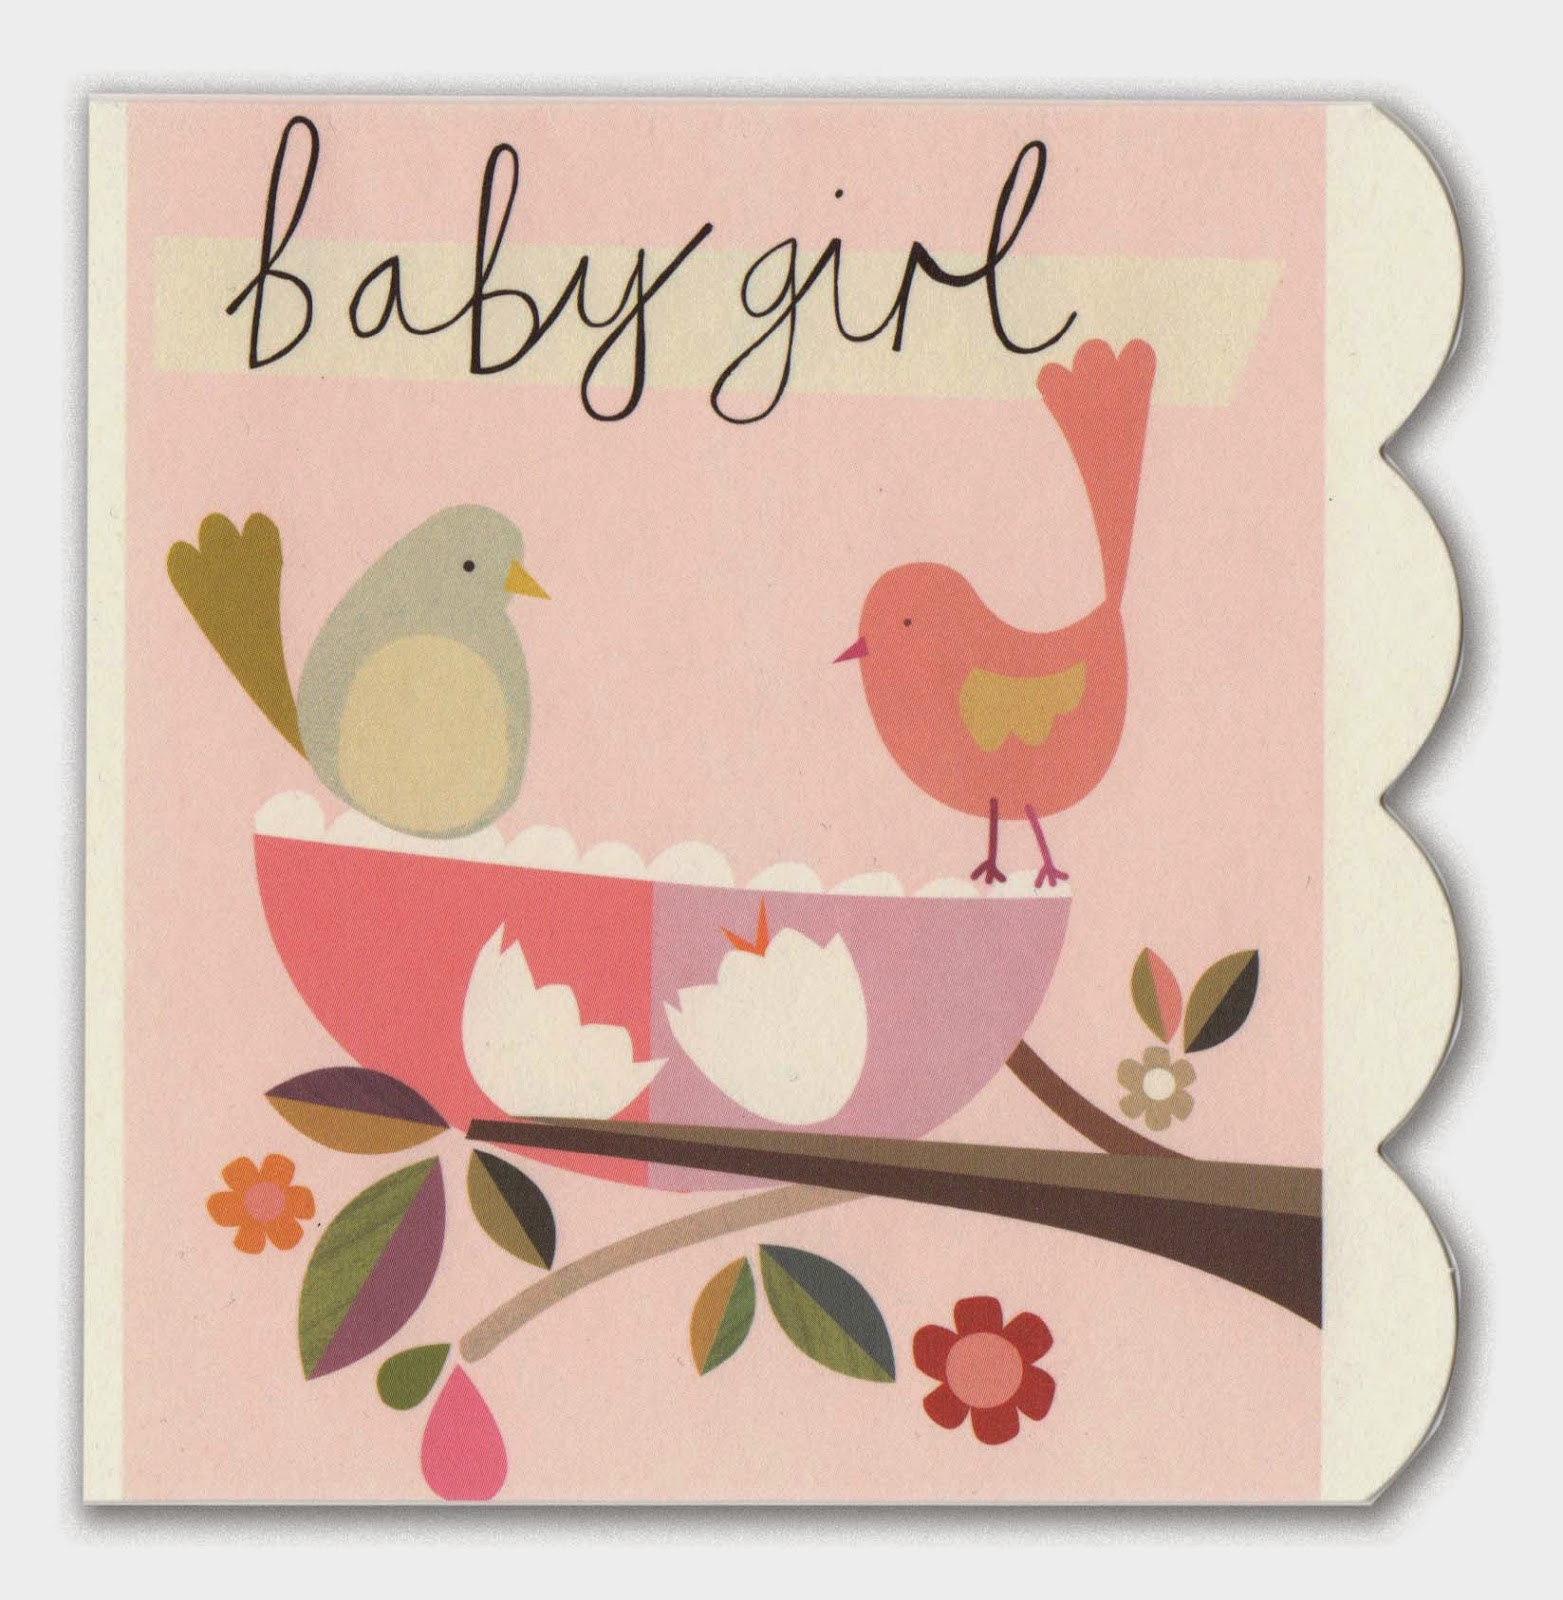 Kay b design illustration the last couple of months have all been about the theme of little girl baby girl heres some sweet greetings cards i have recently been sent and a room m4hsunfo